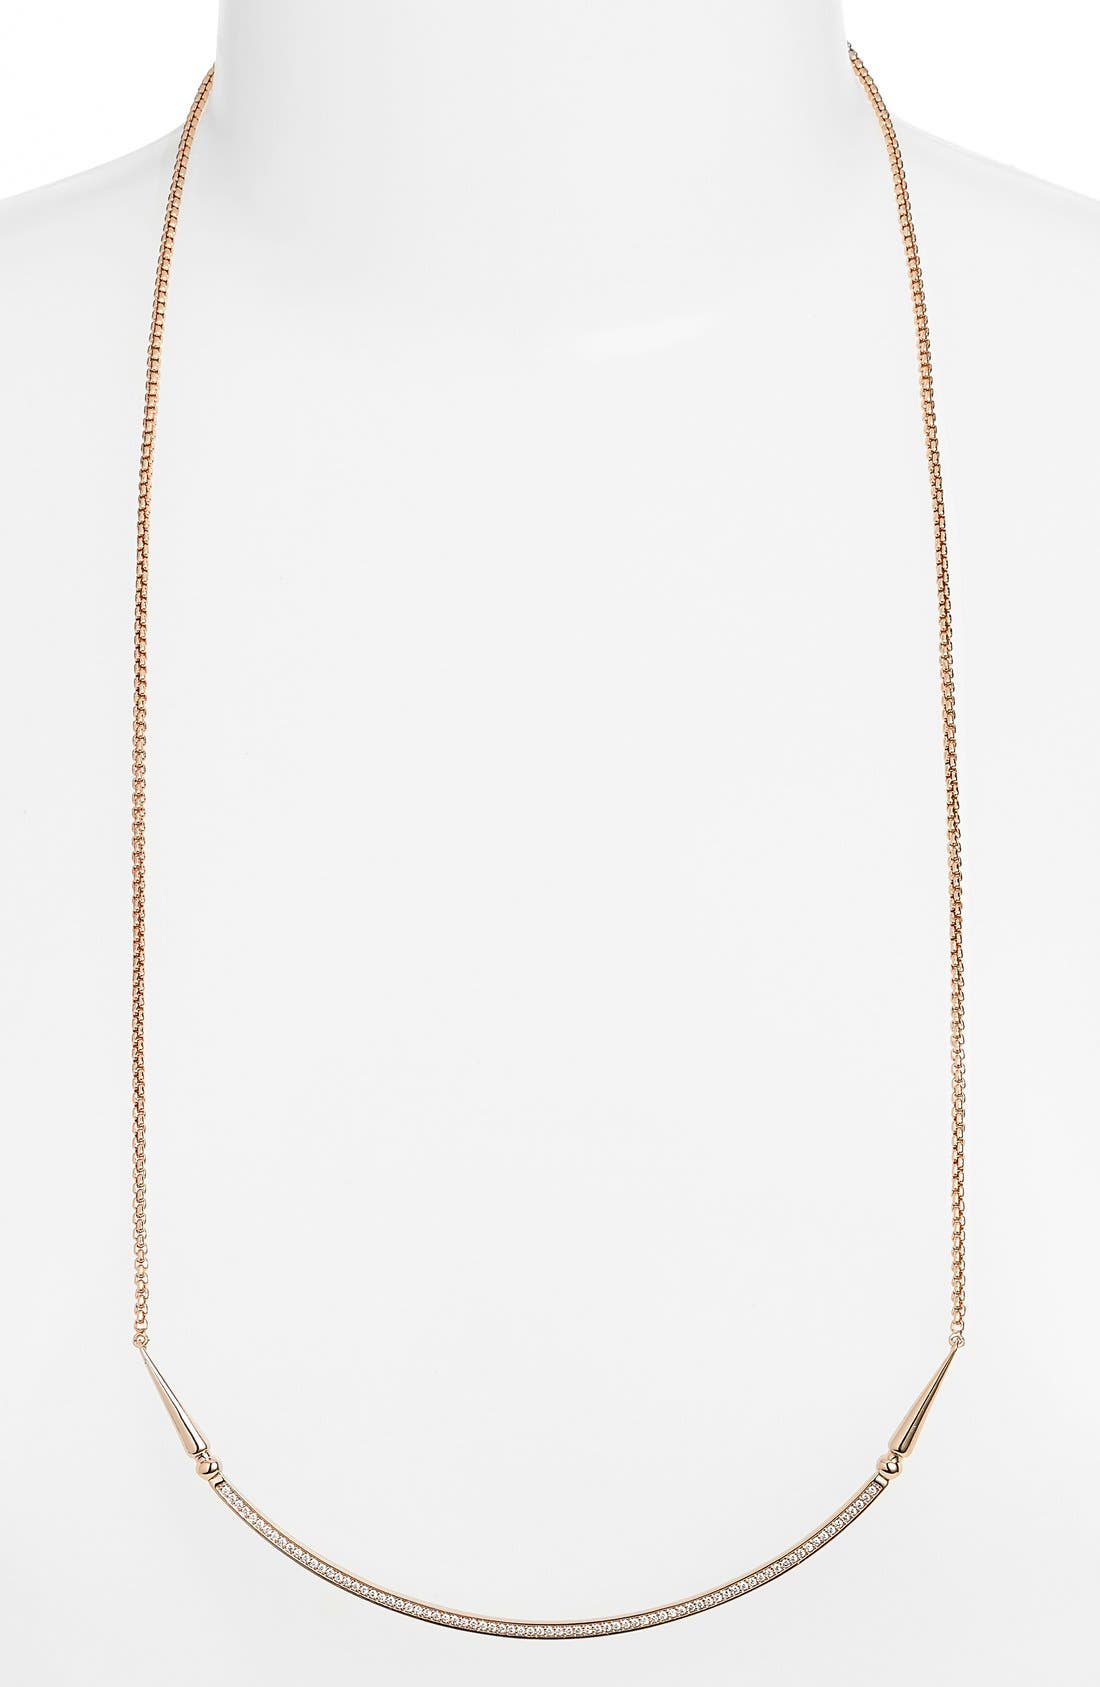 Kendra Scott 'Scottie' Pendant Necklace